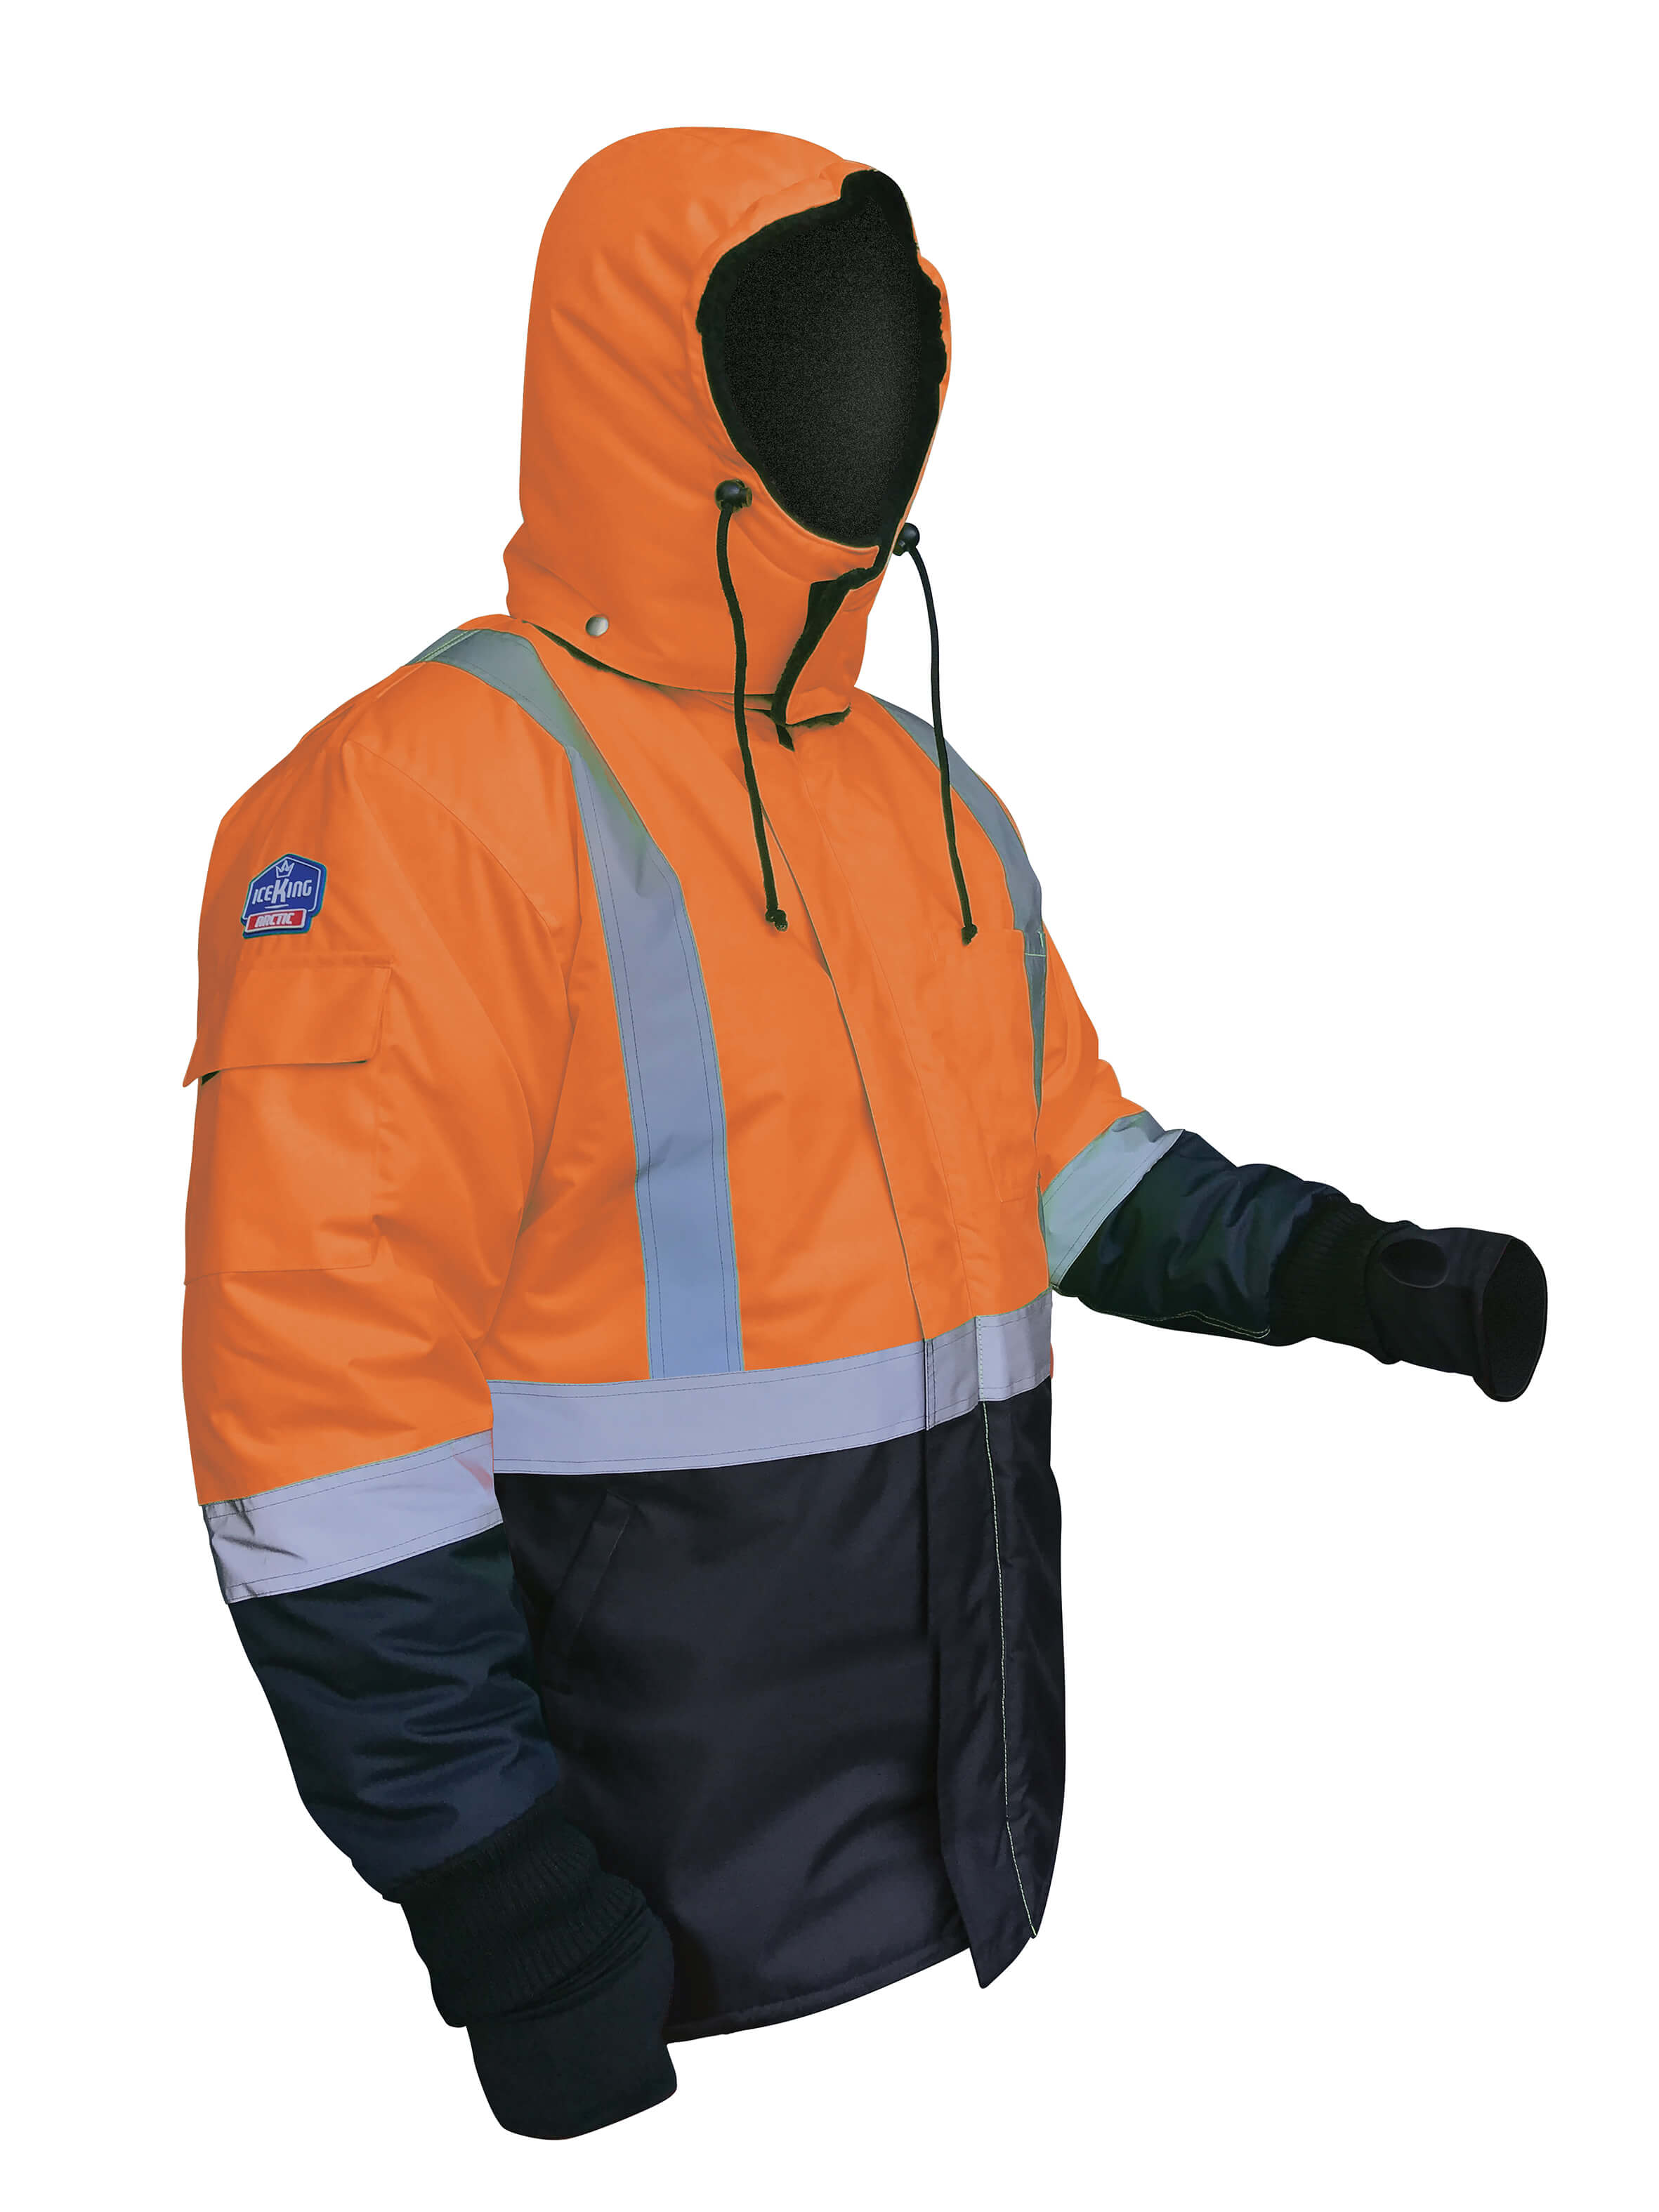 Freezer Jacket product image